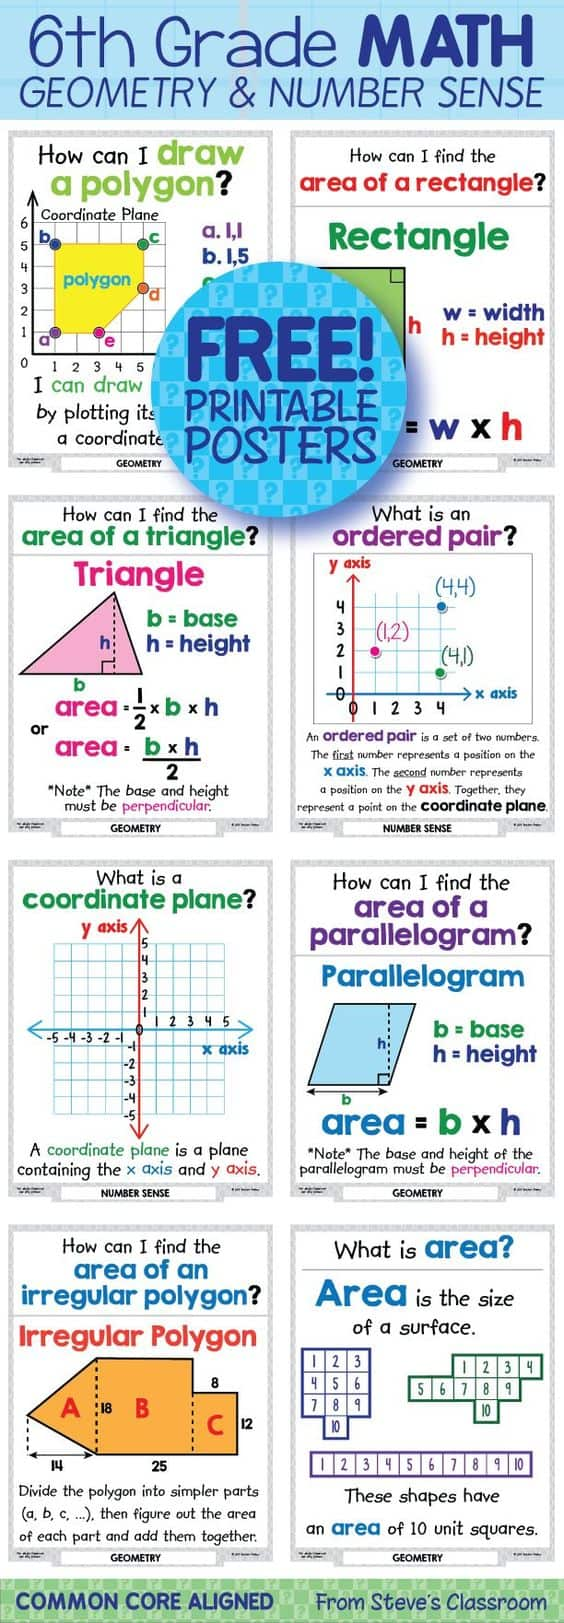 Free Worksheets geometry surface area worksheets : FREE Printable Math Posters: Area of a Triangle ...